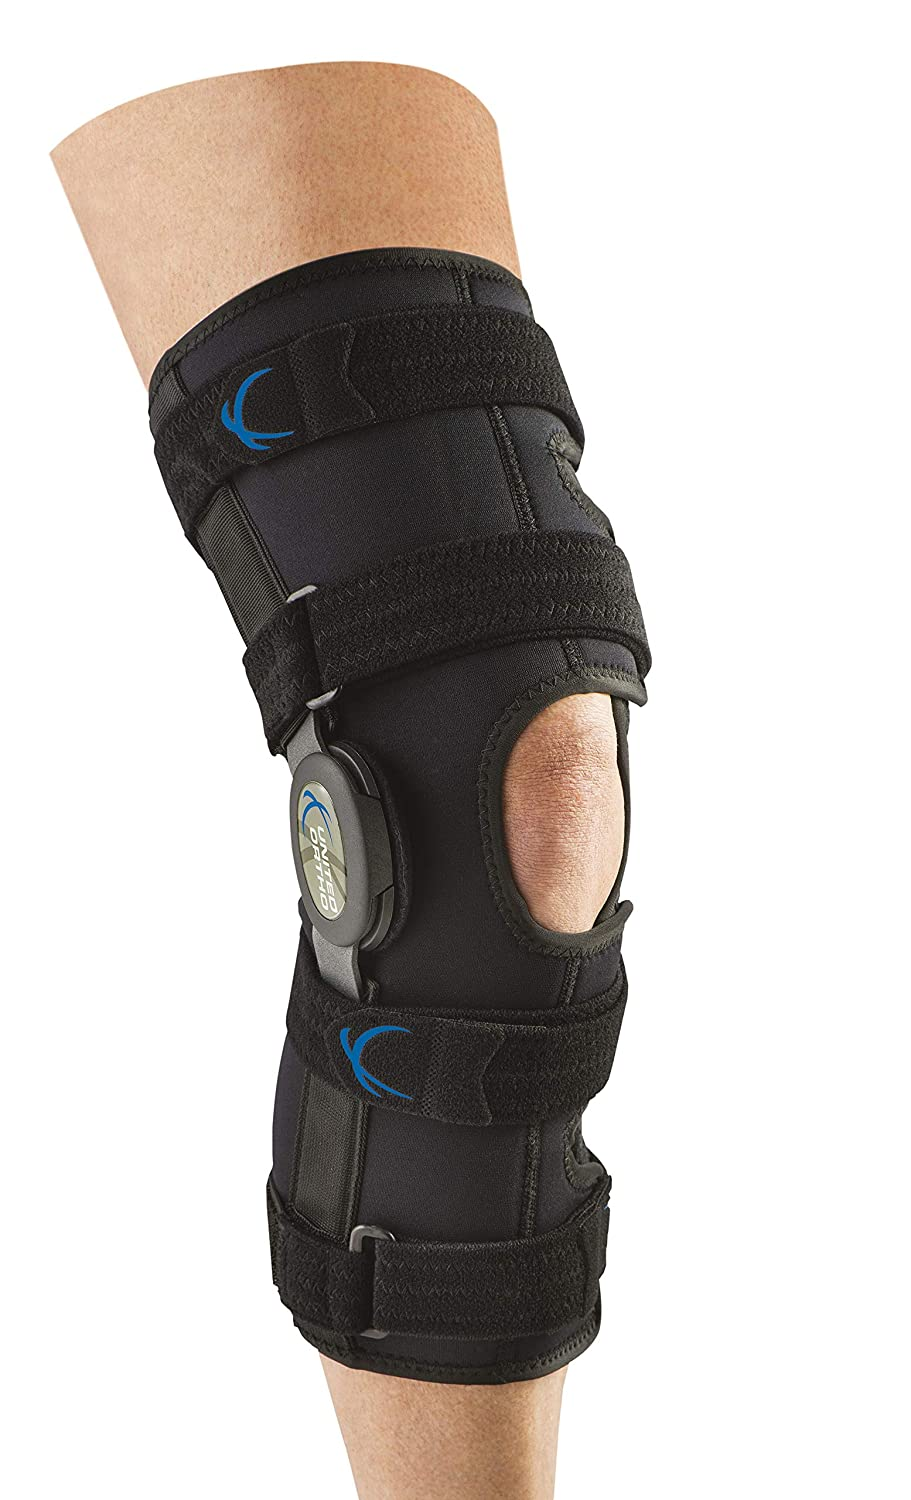 United Ortho 300250-08 Tall Cash special price Neoprene Supp Max 54% OFF Wraparound Knee Hinged